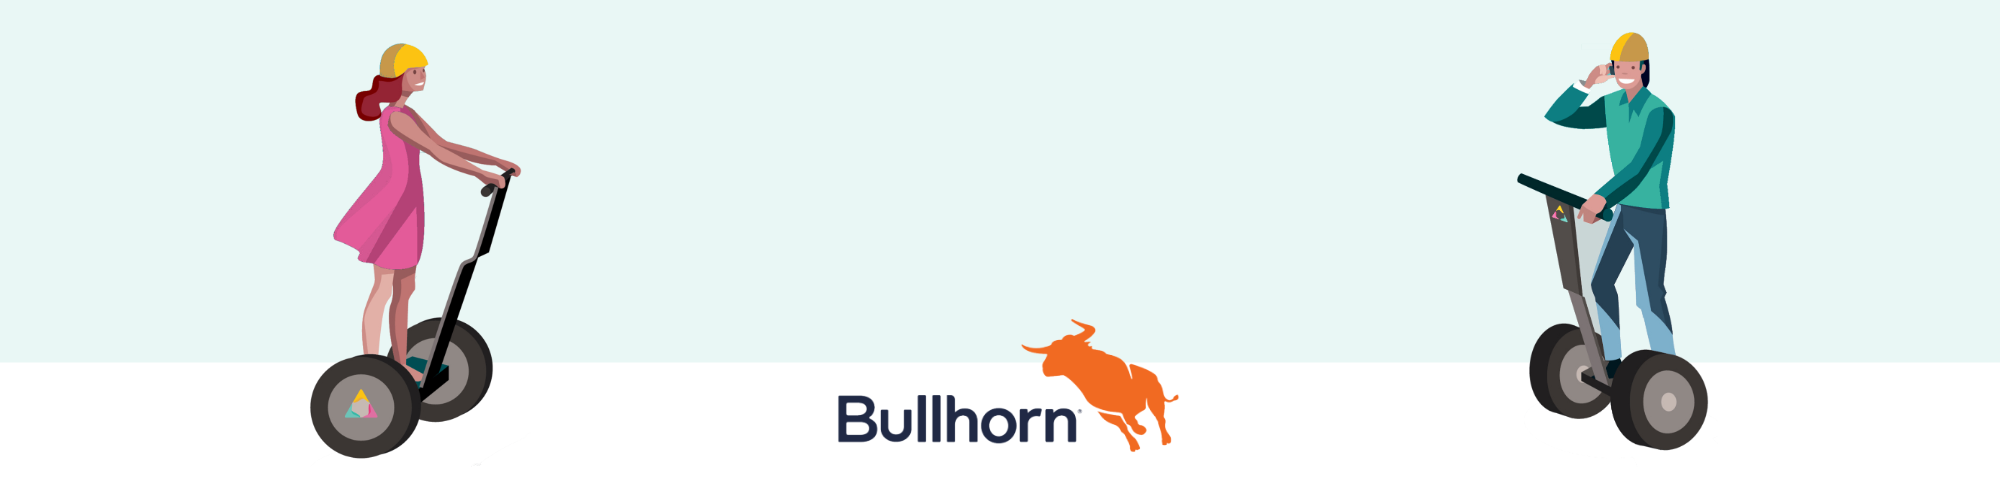 bullhorn-recruitment-crm-training-allen-case-study-banner